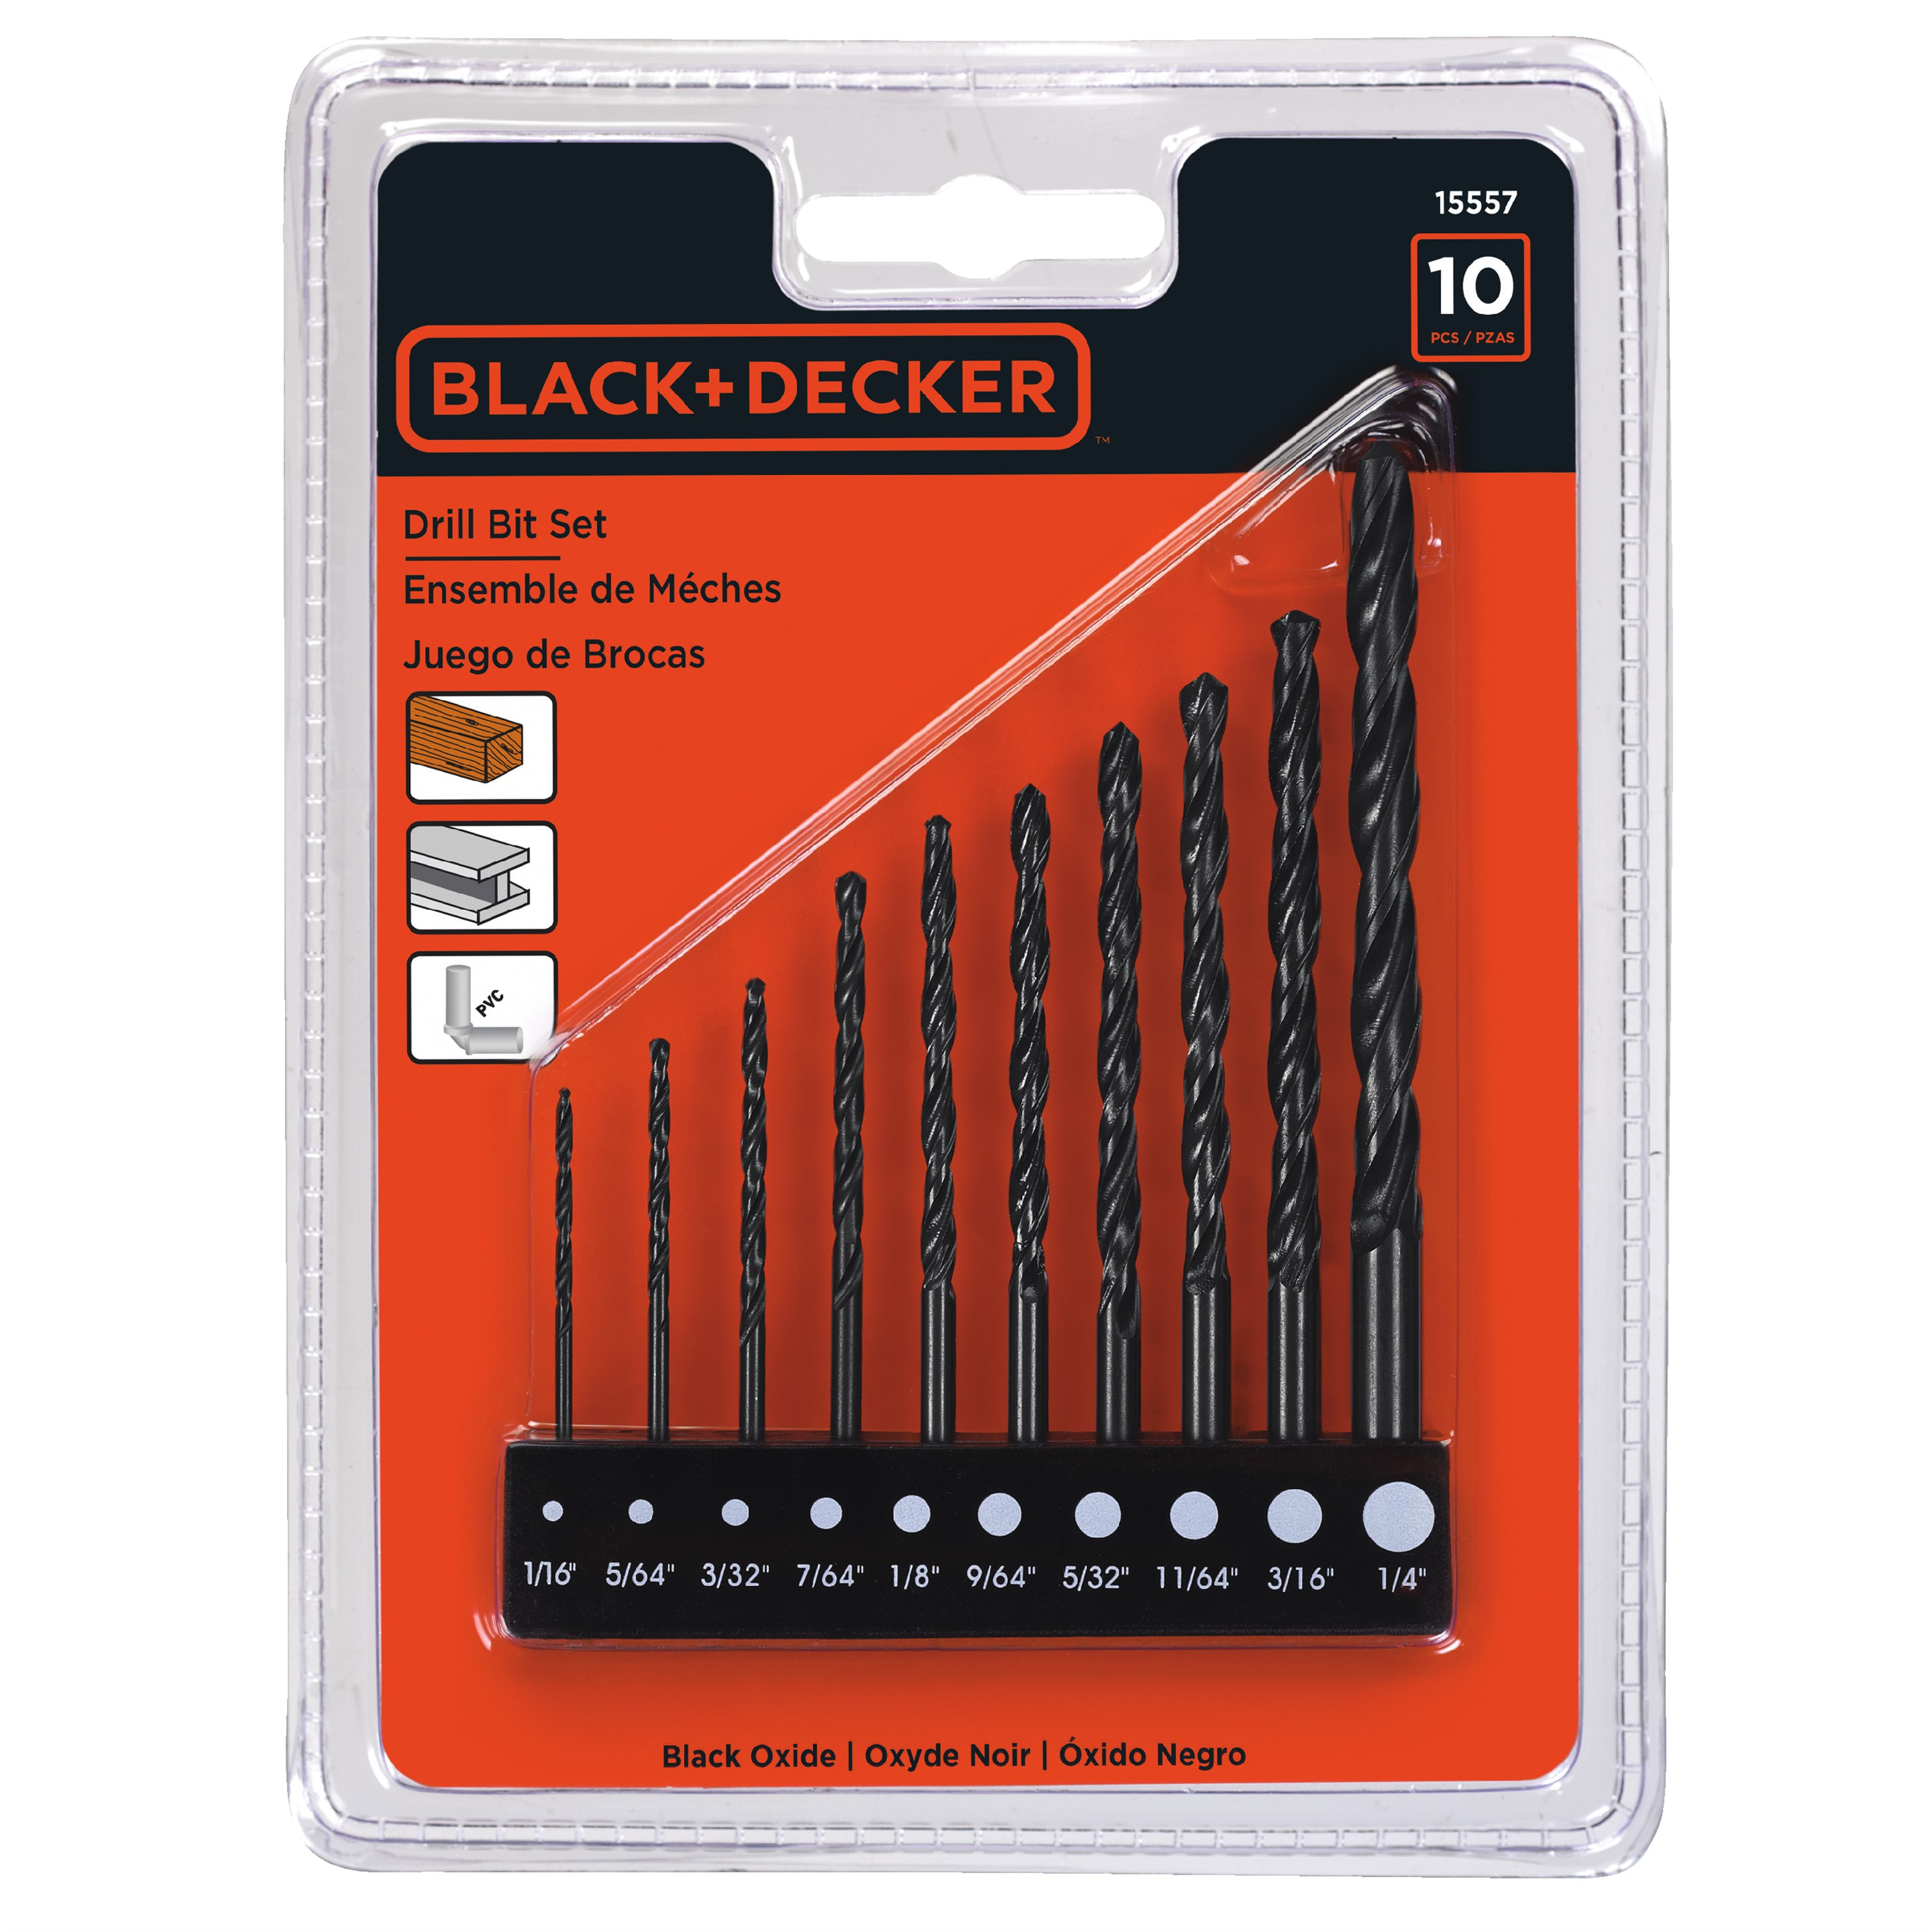 BLACK+DECKER 15557 10pc Drill Bit Set